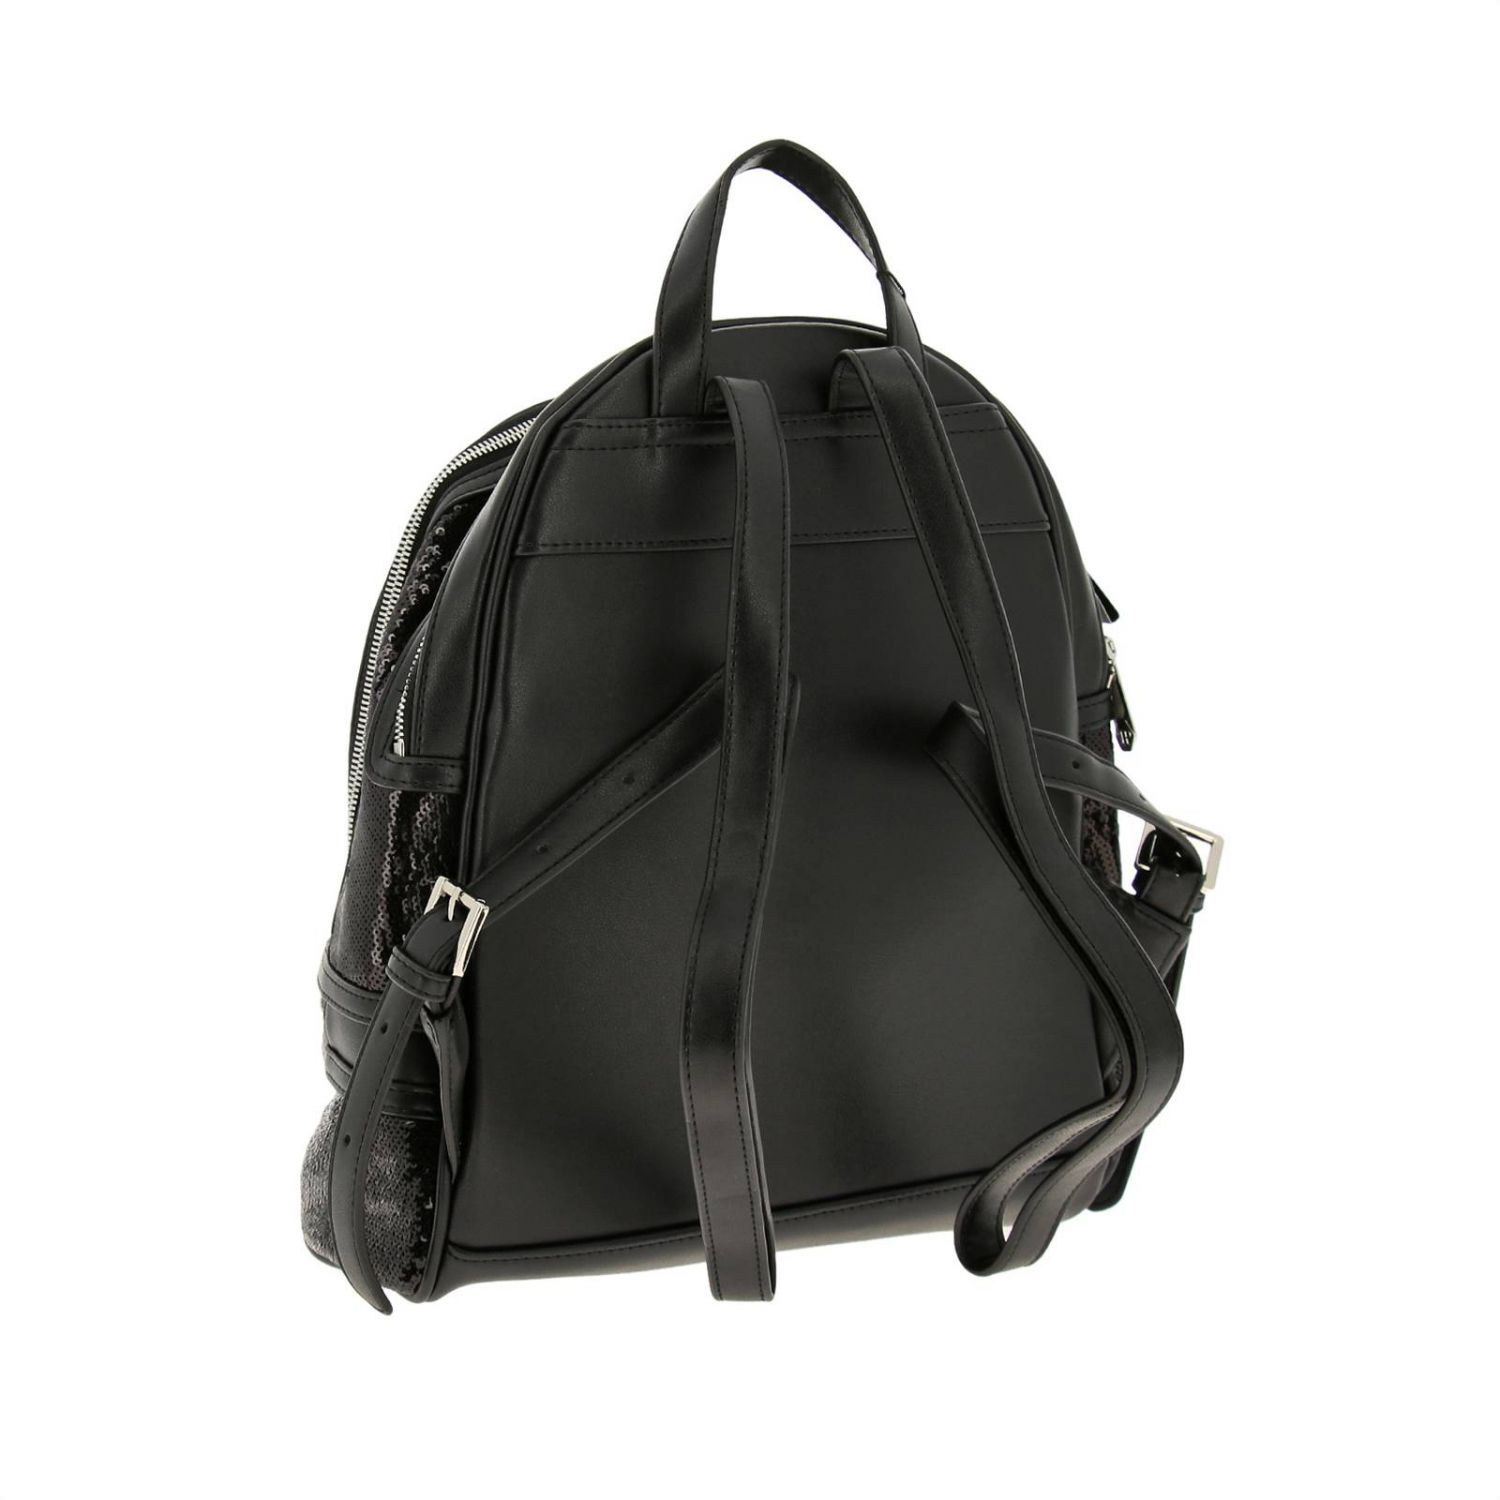 Philipp Plein backpack in leather and sequins with hexagonal monogram and zip black 4